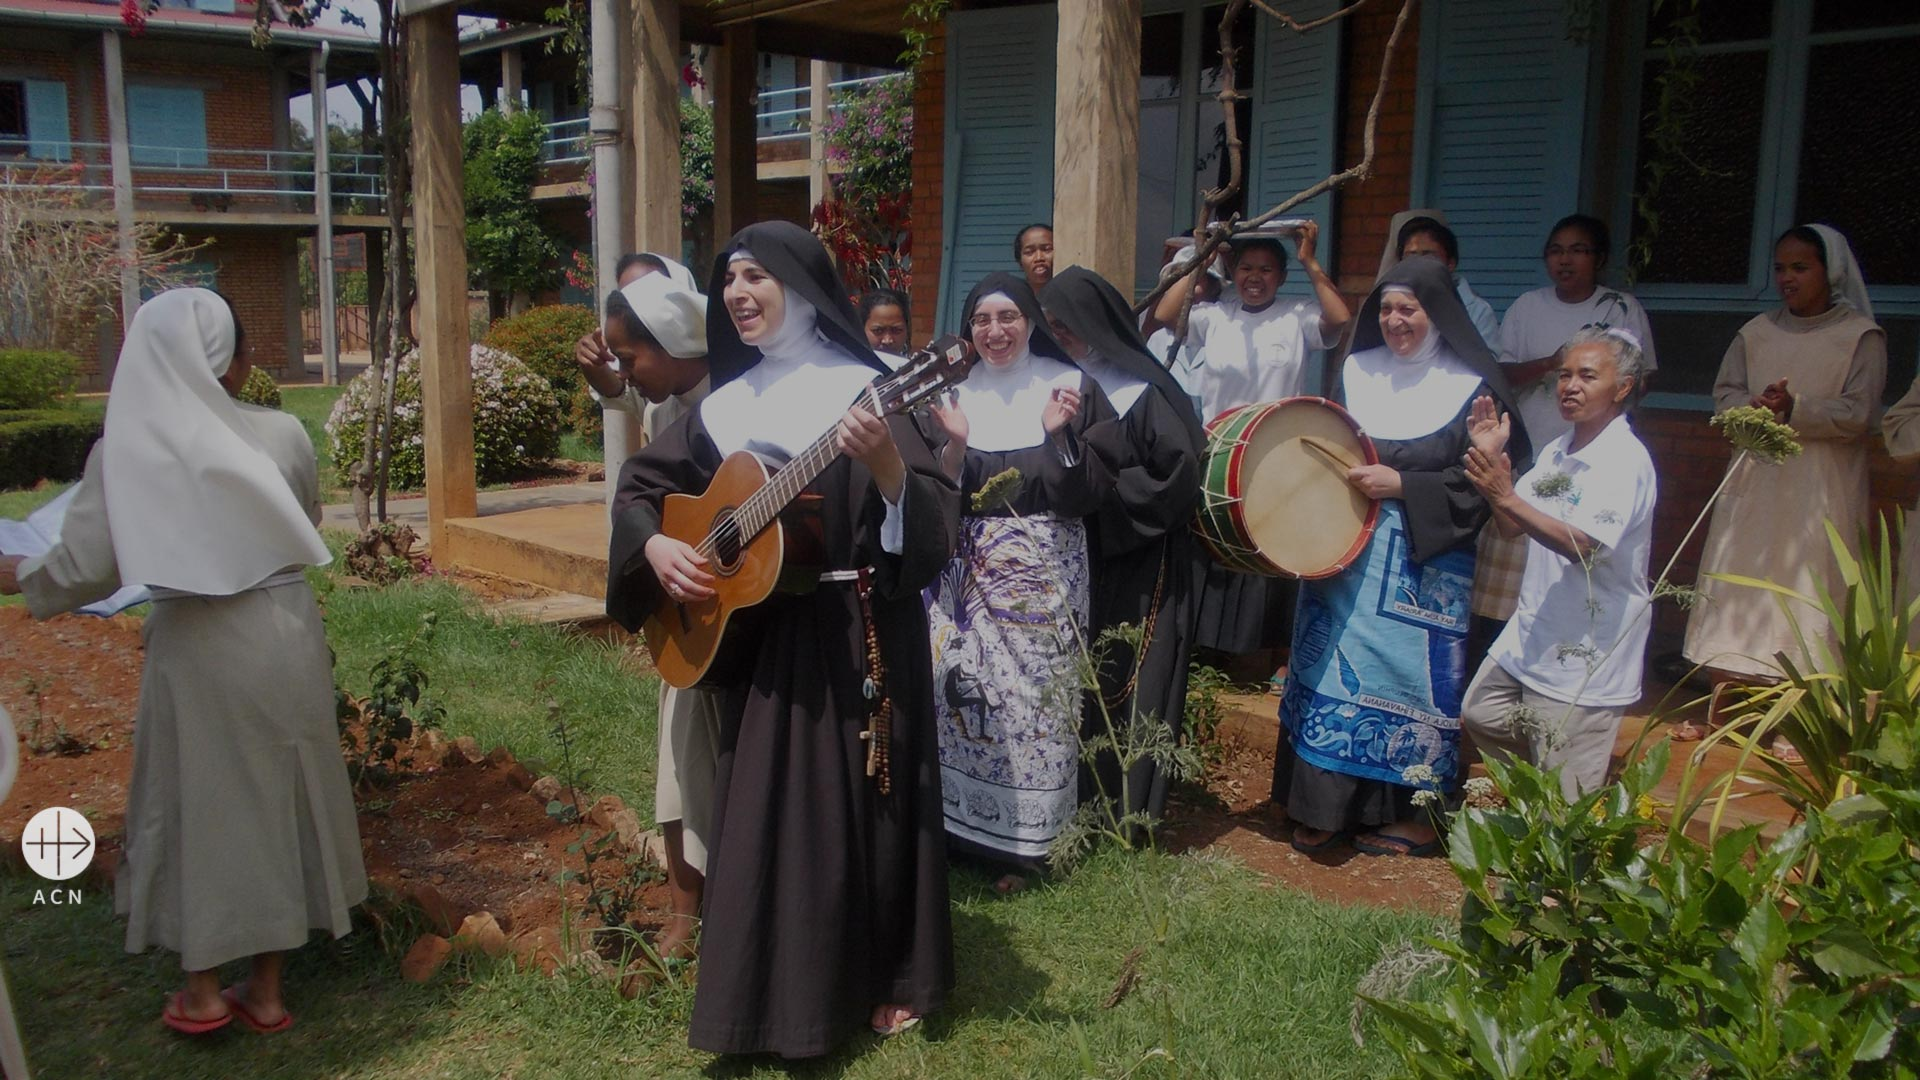 The dream of the Poor Clares